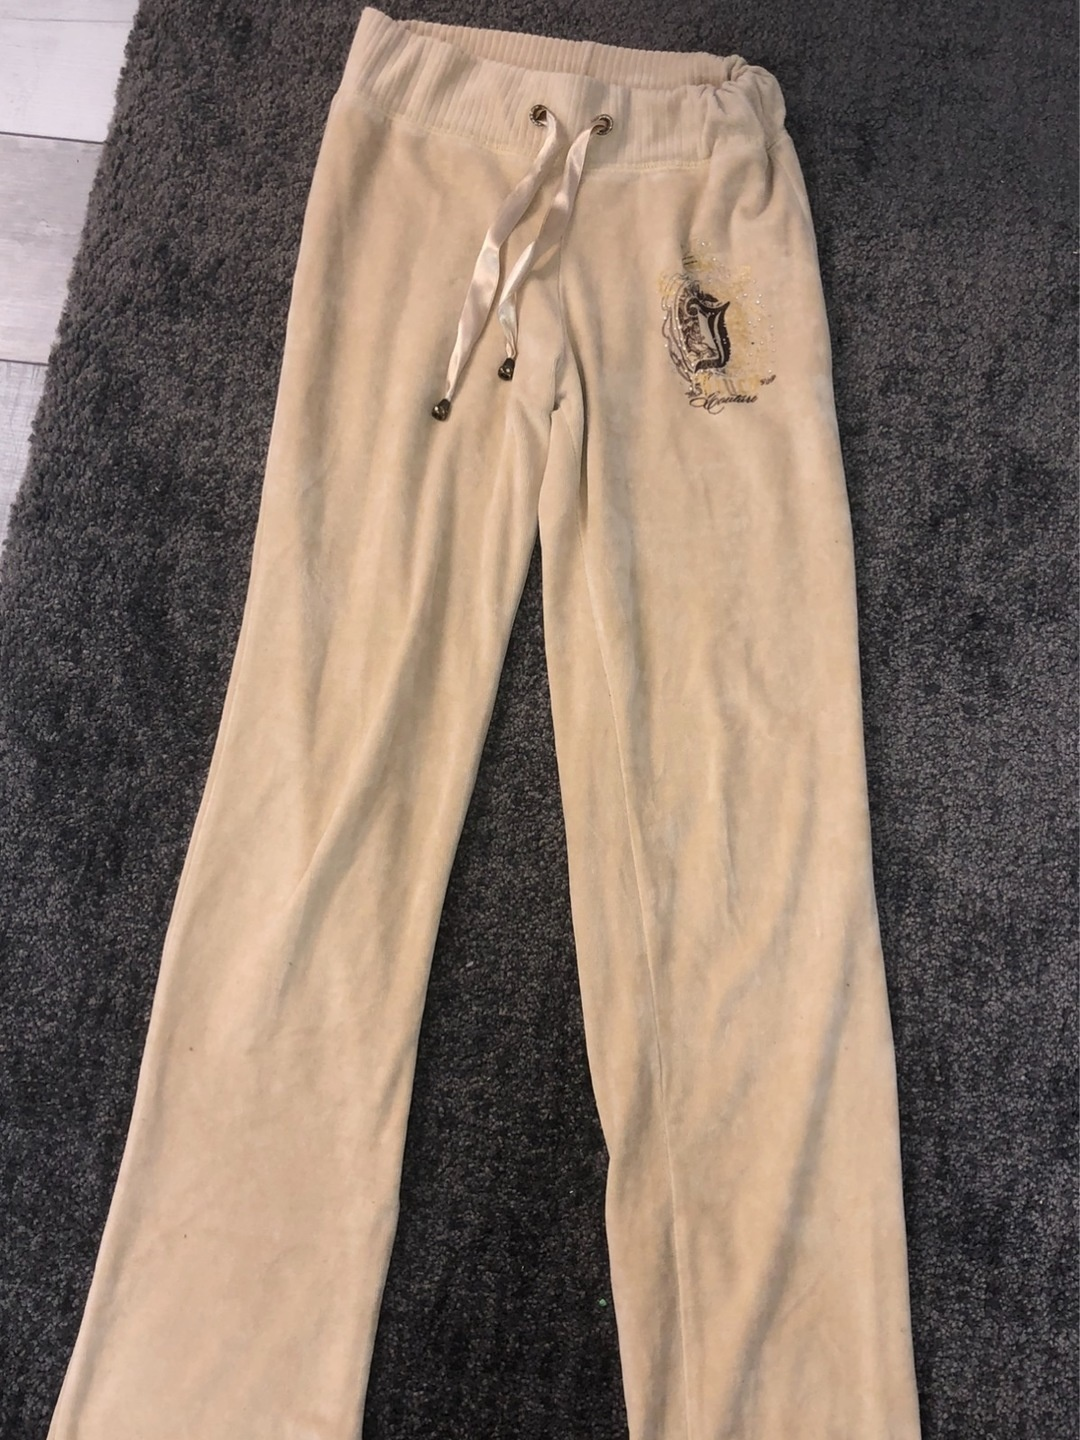 Women's trousers & jeans - JUICY COUTURE photo 3